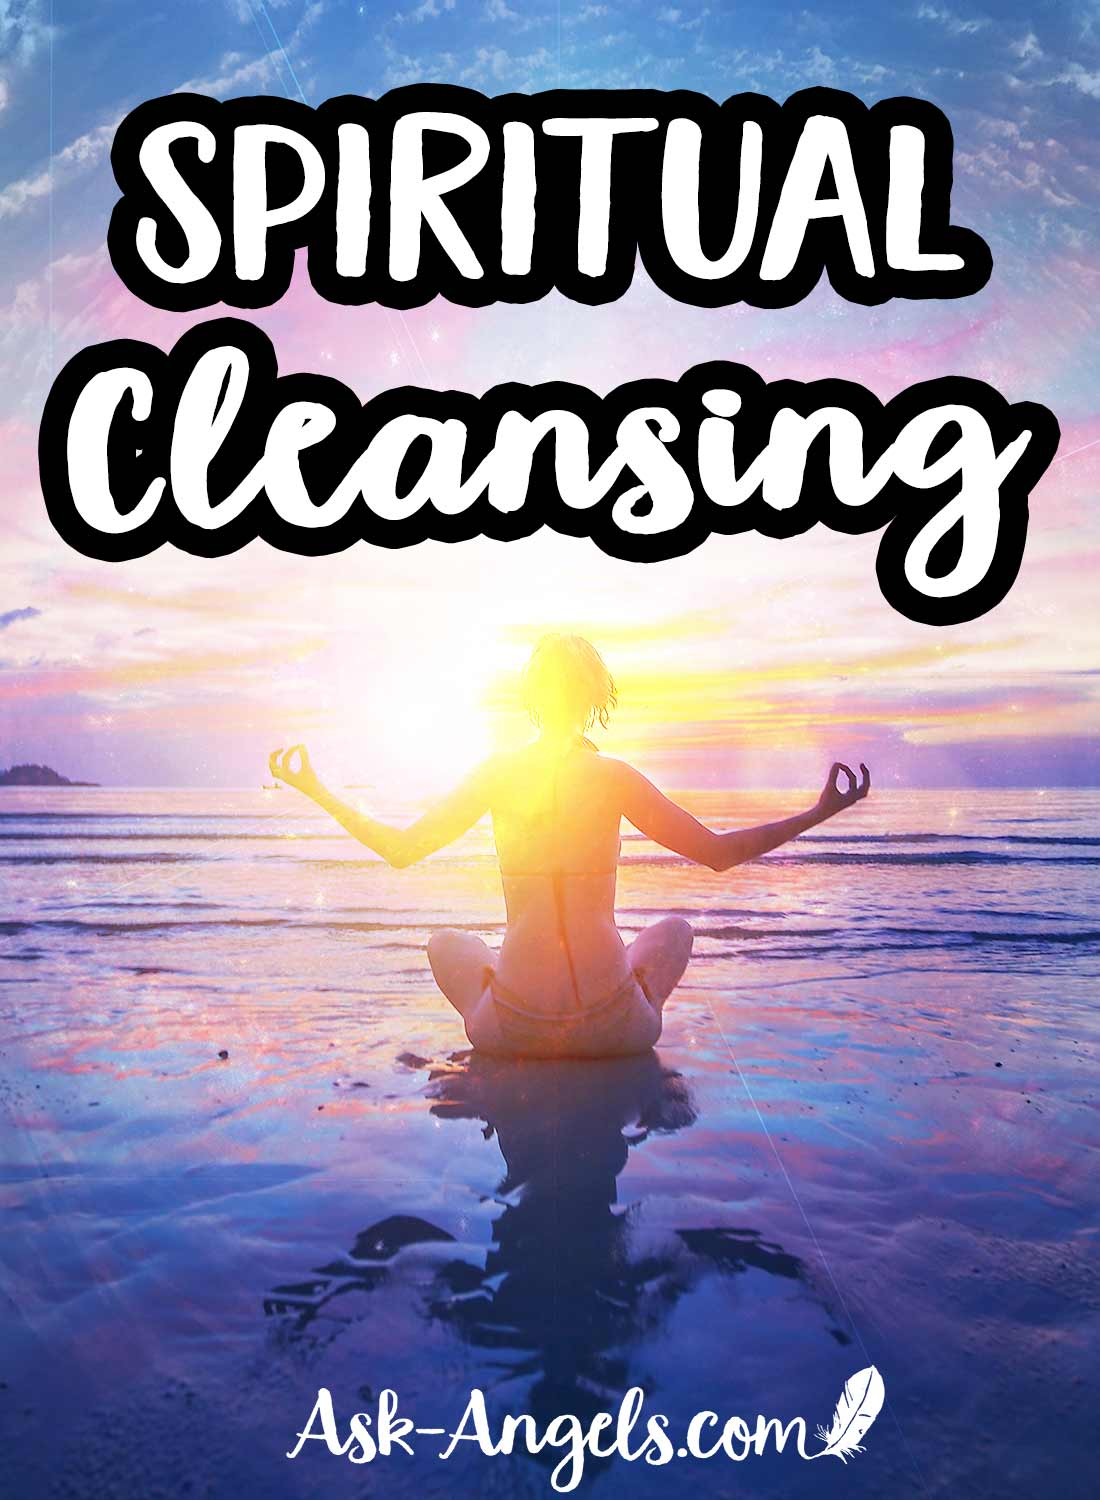 Spiritual cleansing is not only about cleansing dense energies, negativity, and blockages from your mind, body, and spirit... Spiritual cleansing is the process of breaking through old and outdated energy and releasing it into the light so you can elevate your personal vibration to ride the wave of light, positive change, and new energy into the future.